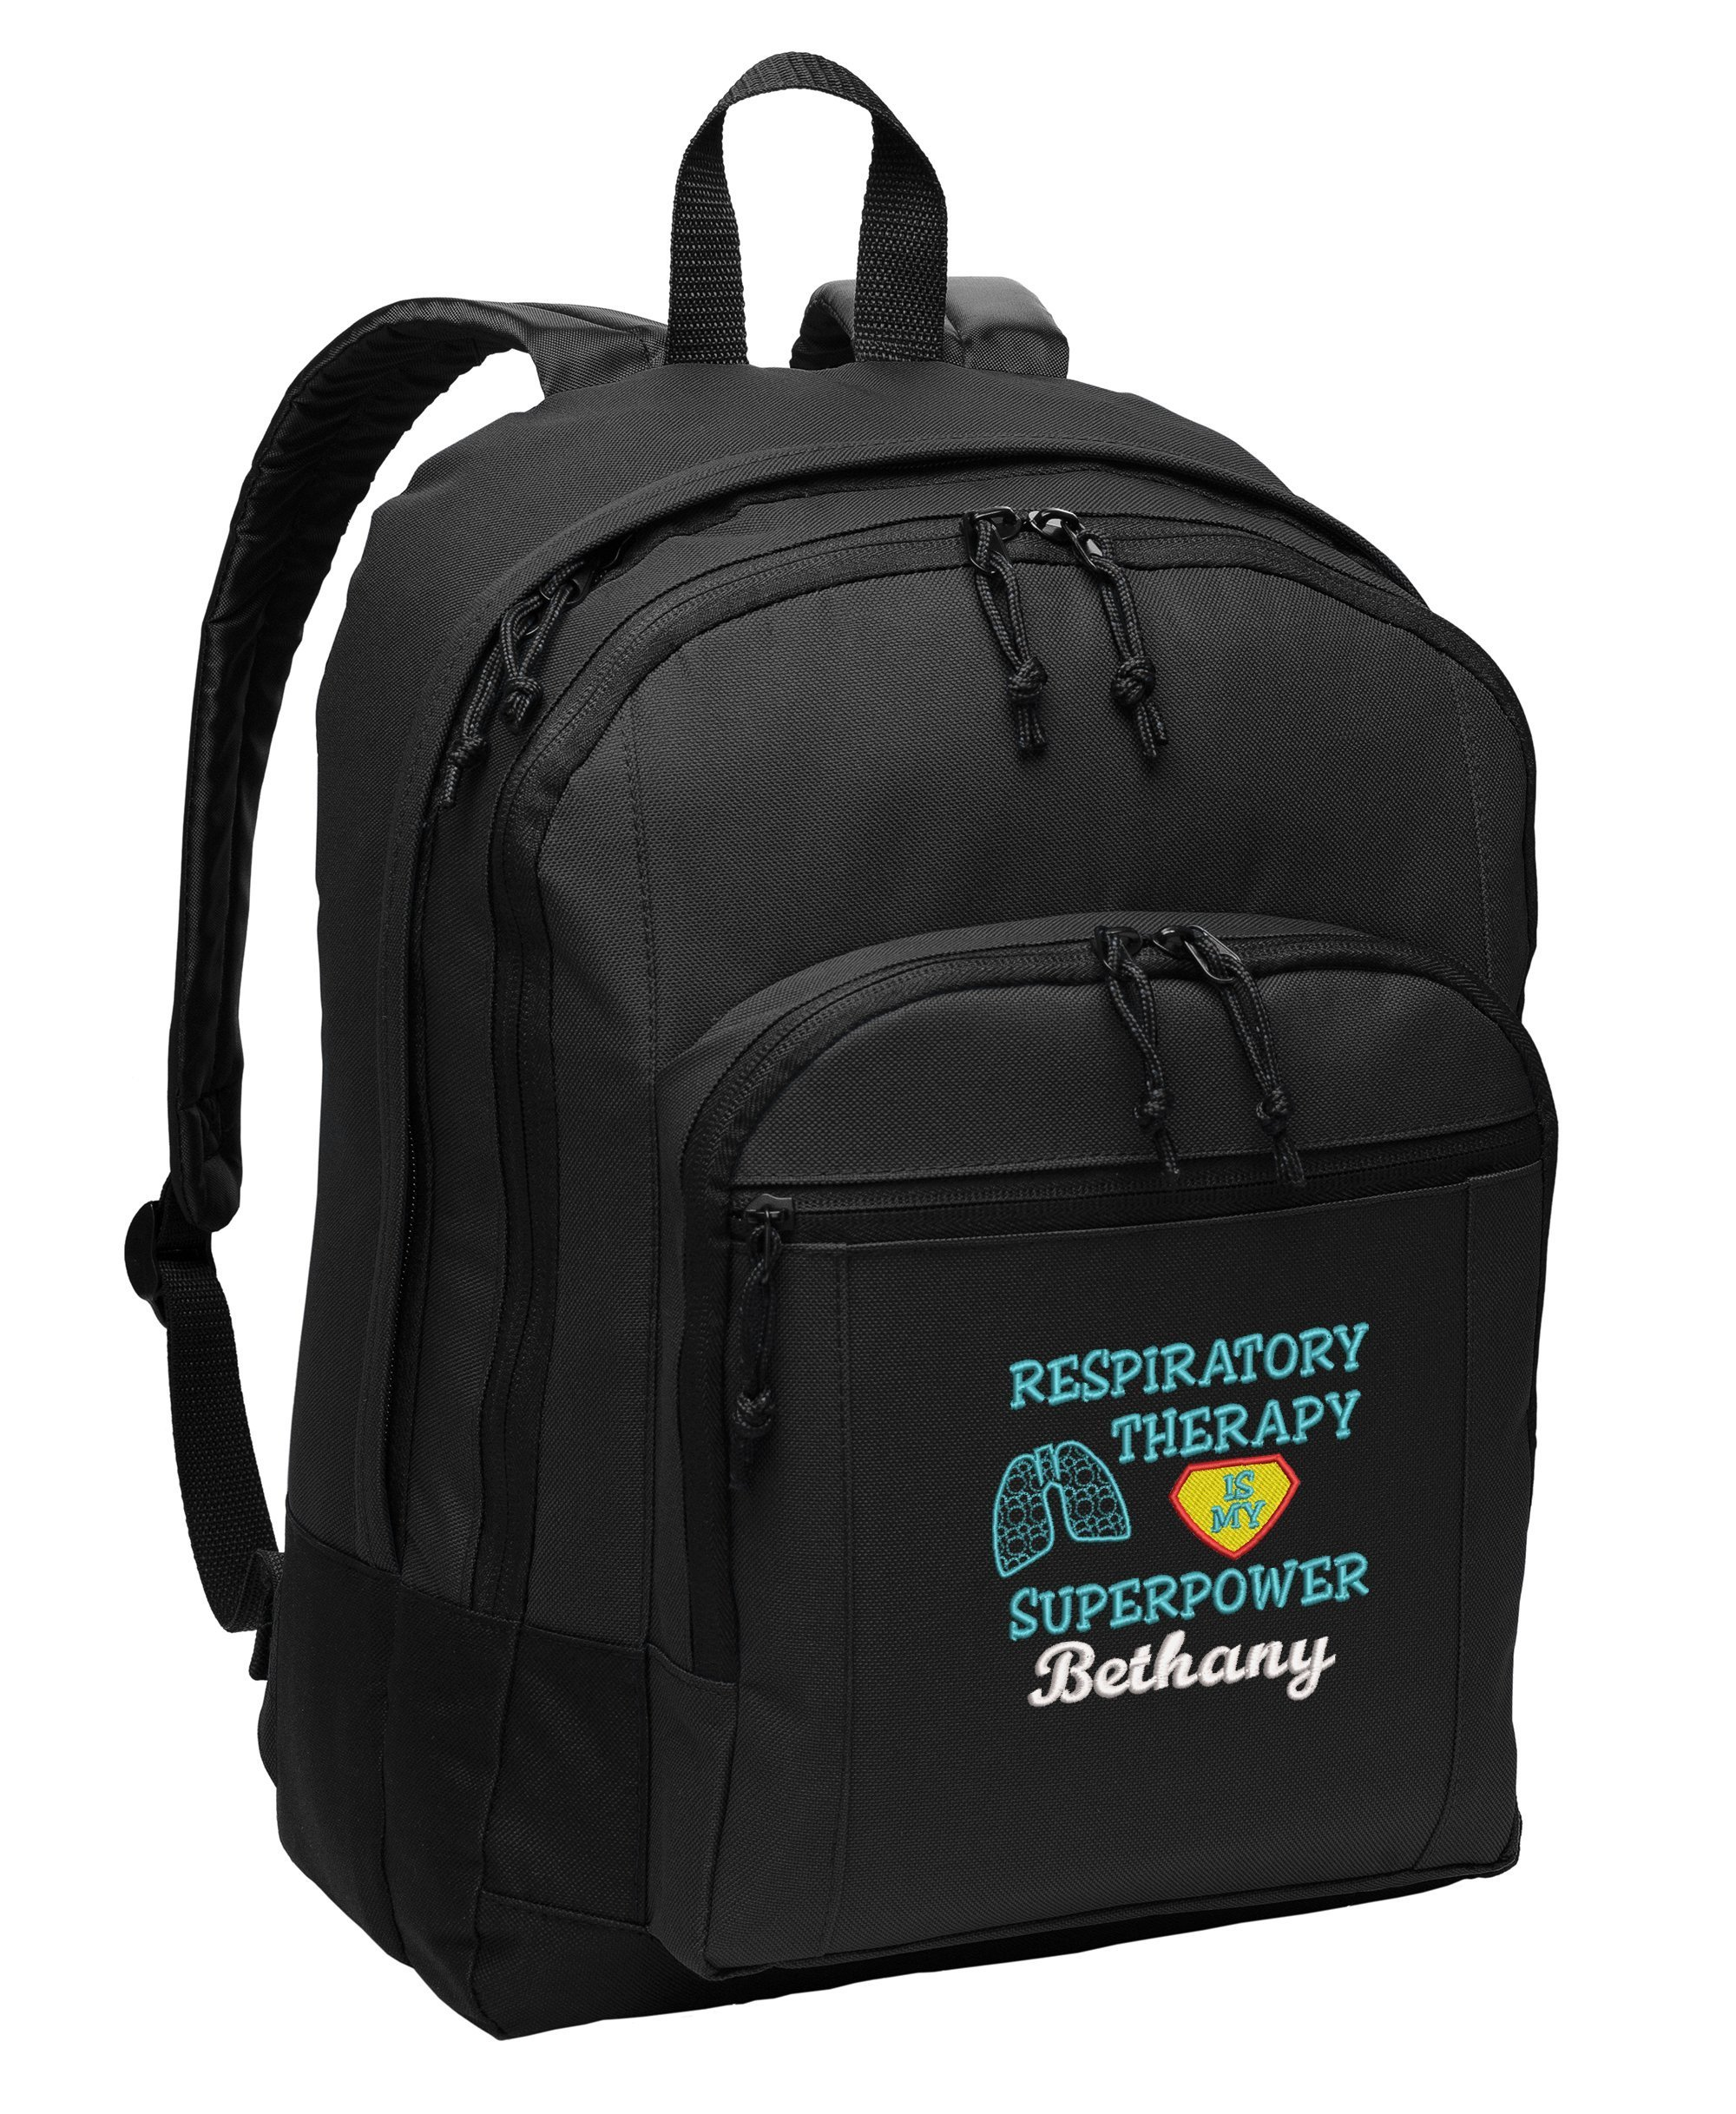 Respiratory Therapy is my Superpower Personalized Embroidered Backpack